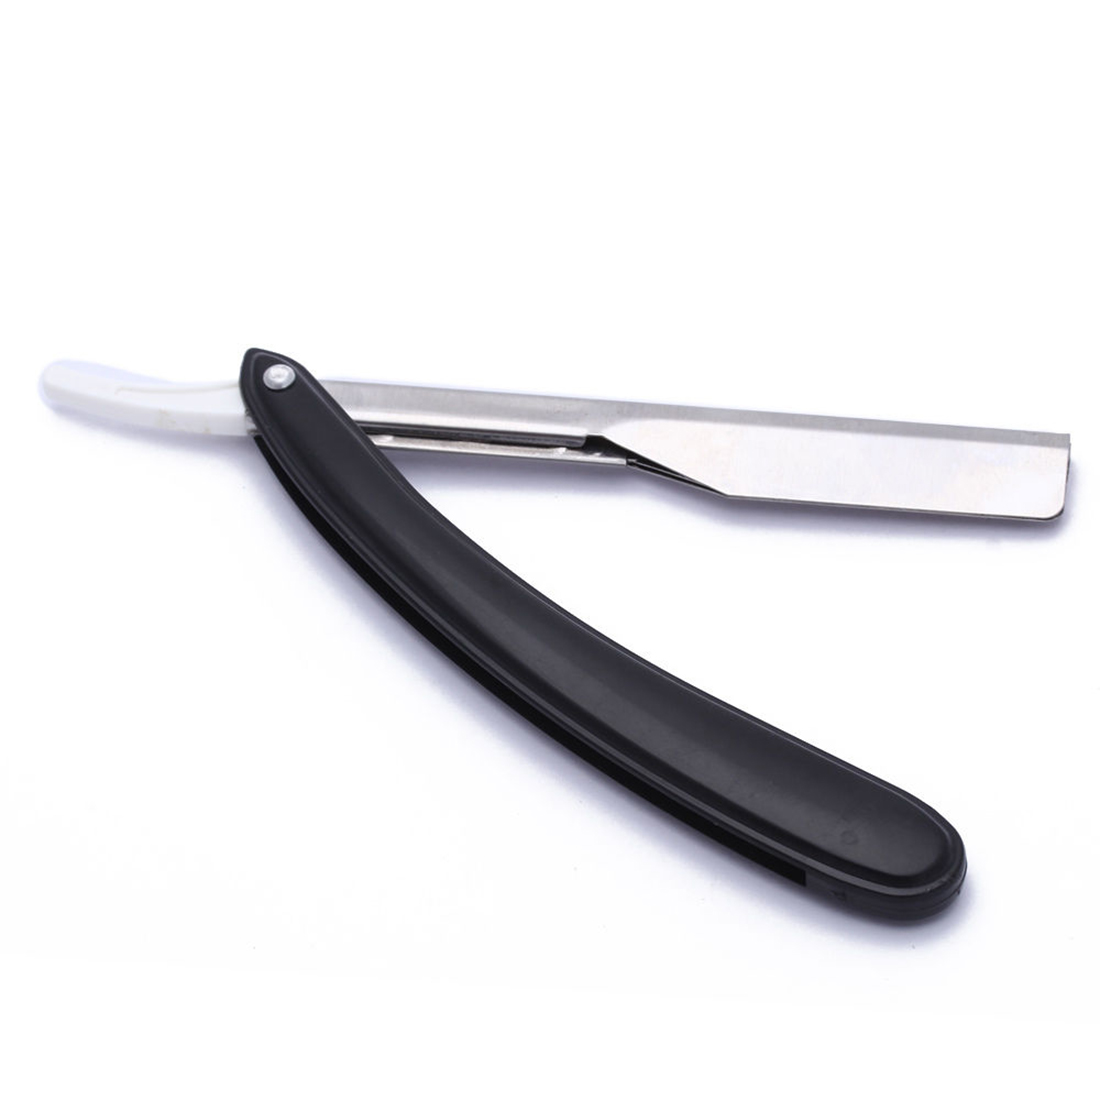 Professional Straight Edge Stainless Steel Sharp Haircut Folding Razor Beard Knife Hair Razor Folding Razor Hair Removal Tool